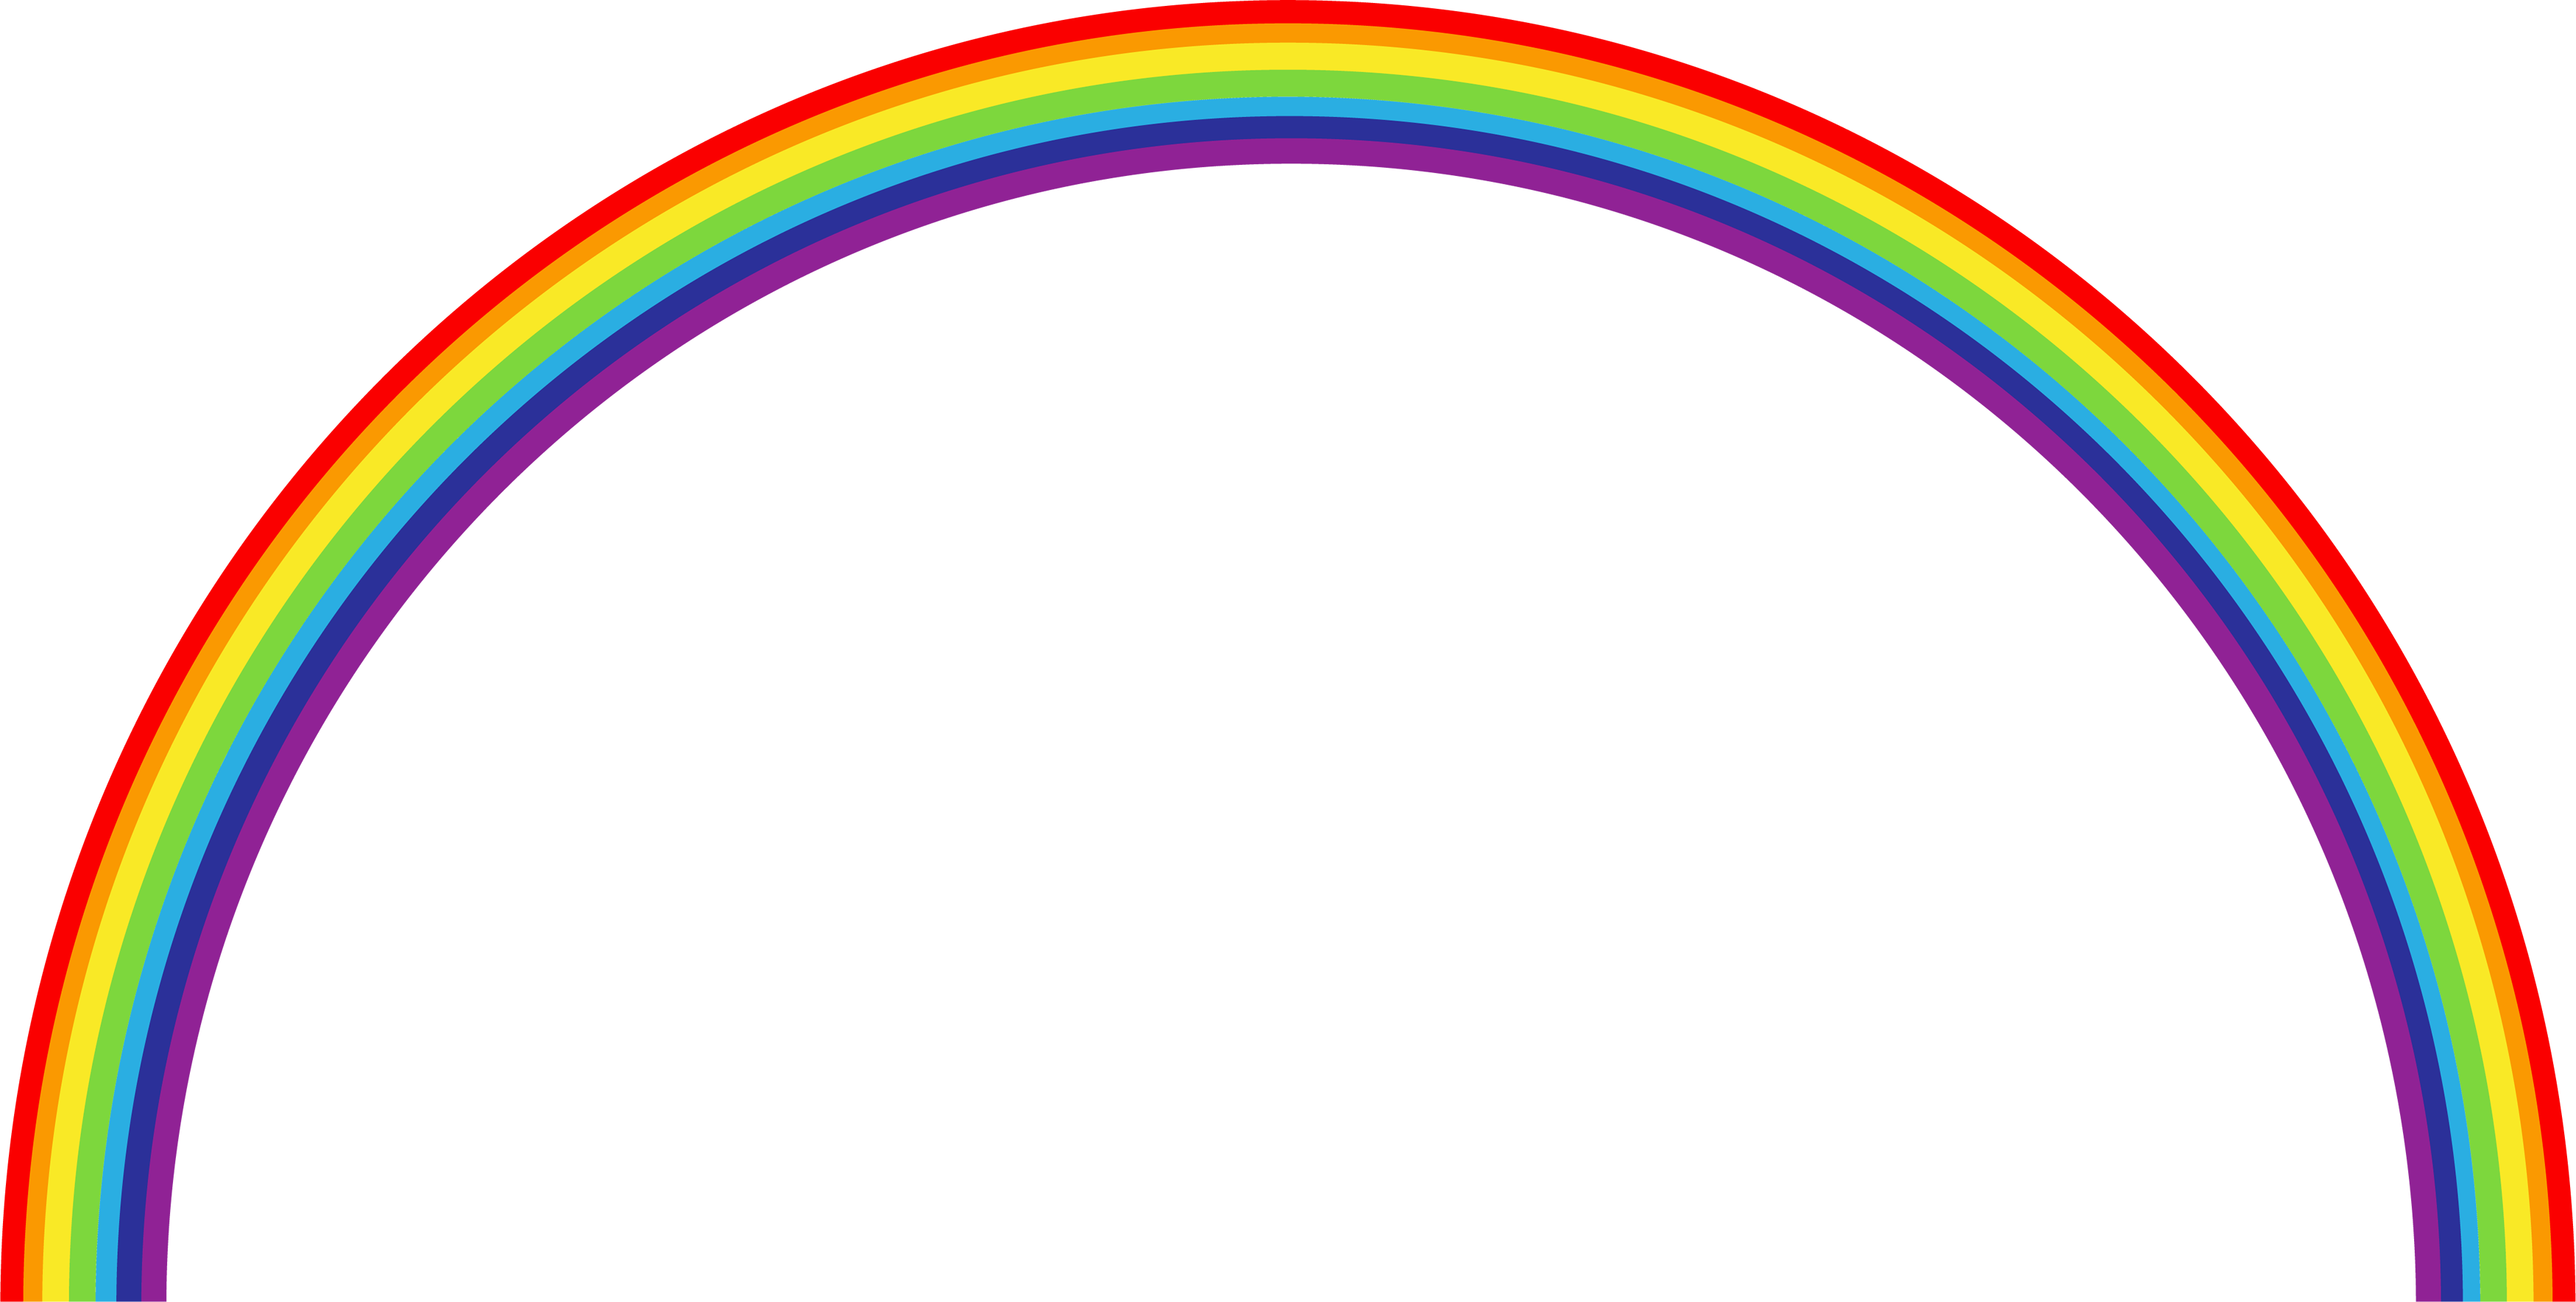 Real rainbow png. Images free download image